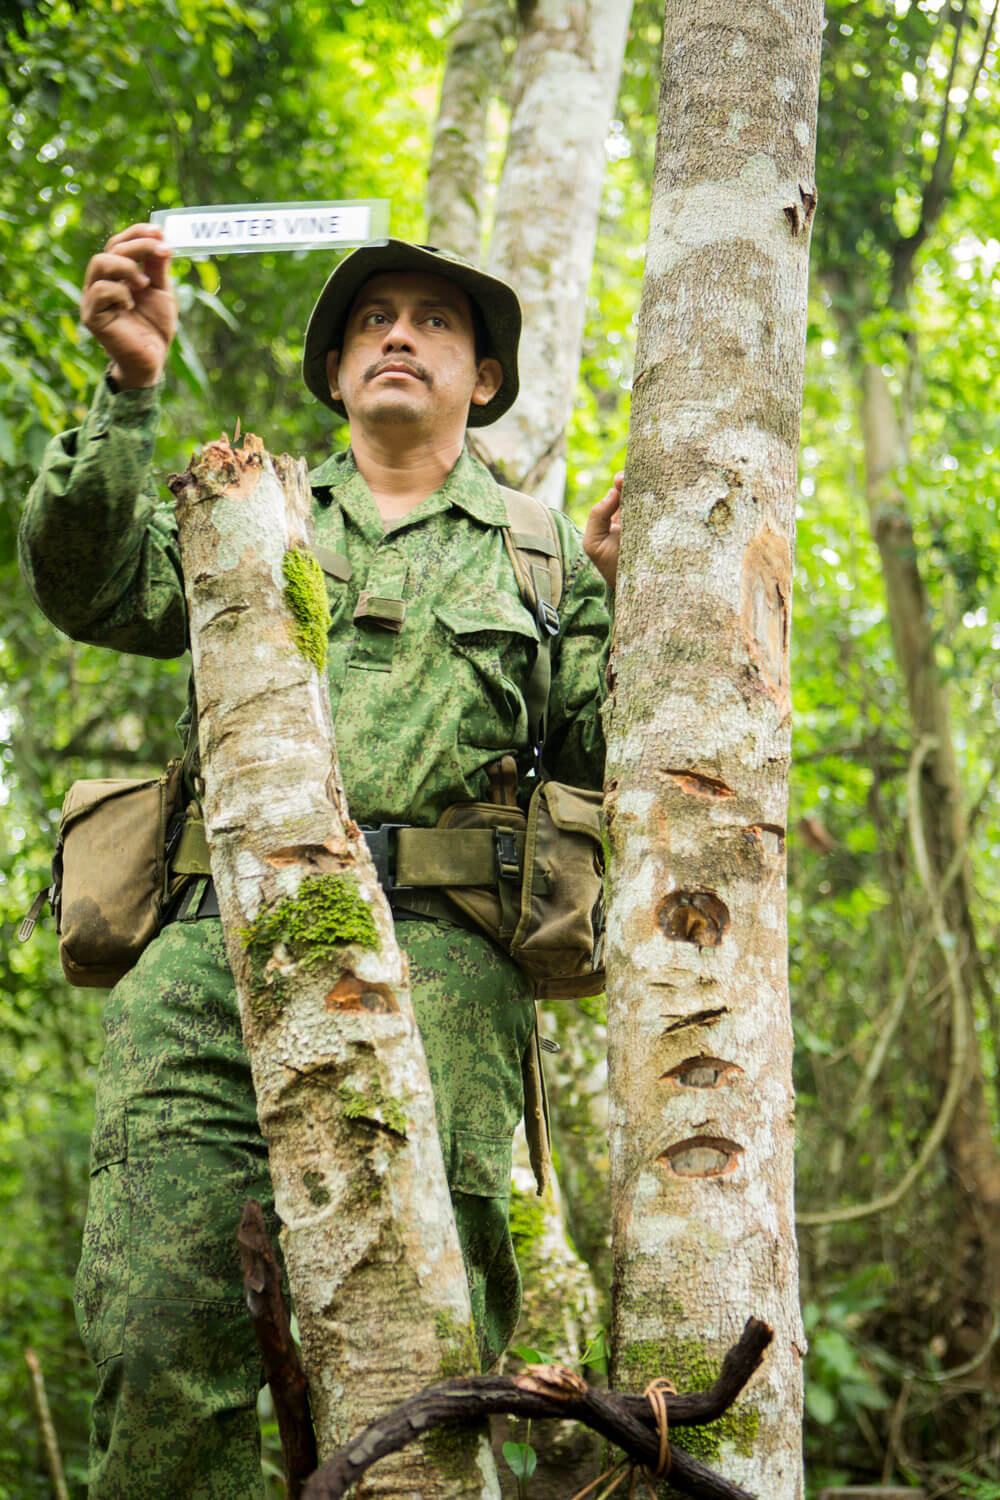 A Belize Defense Force soldier demonstrates water-trapping techniques during jungle warfare training in the Belizean rainforest. U.S. Marine Corps photo by Cpl Katelyn Hunter